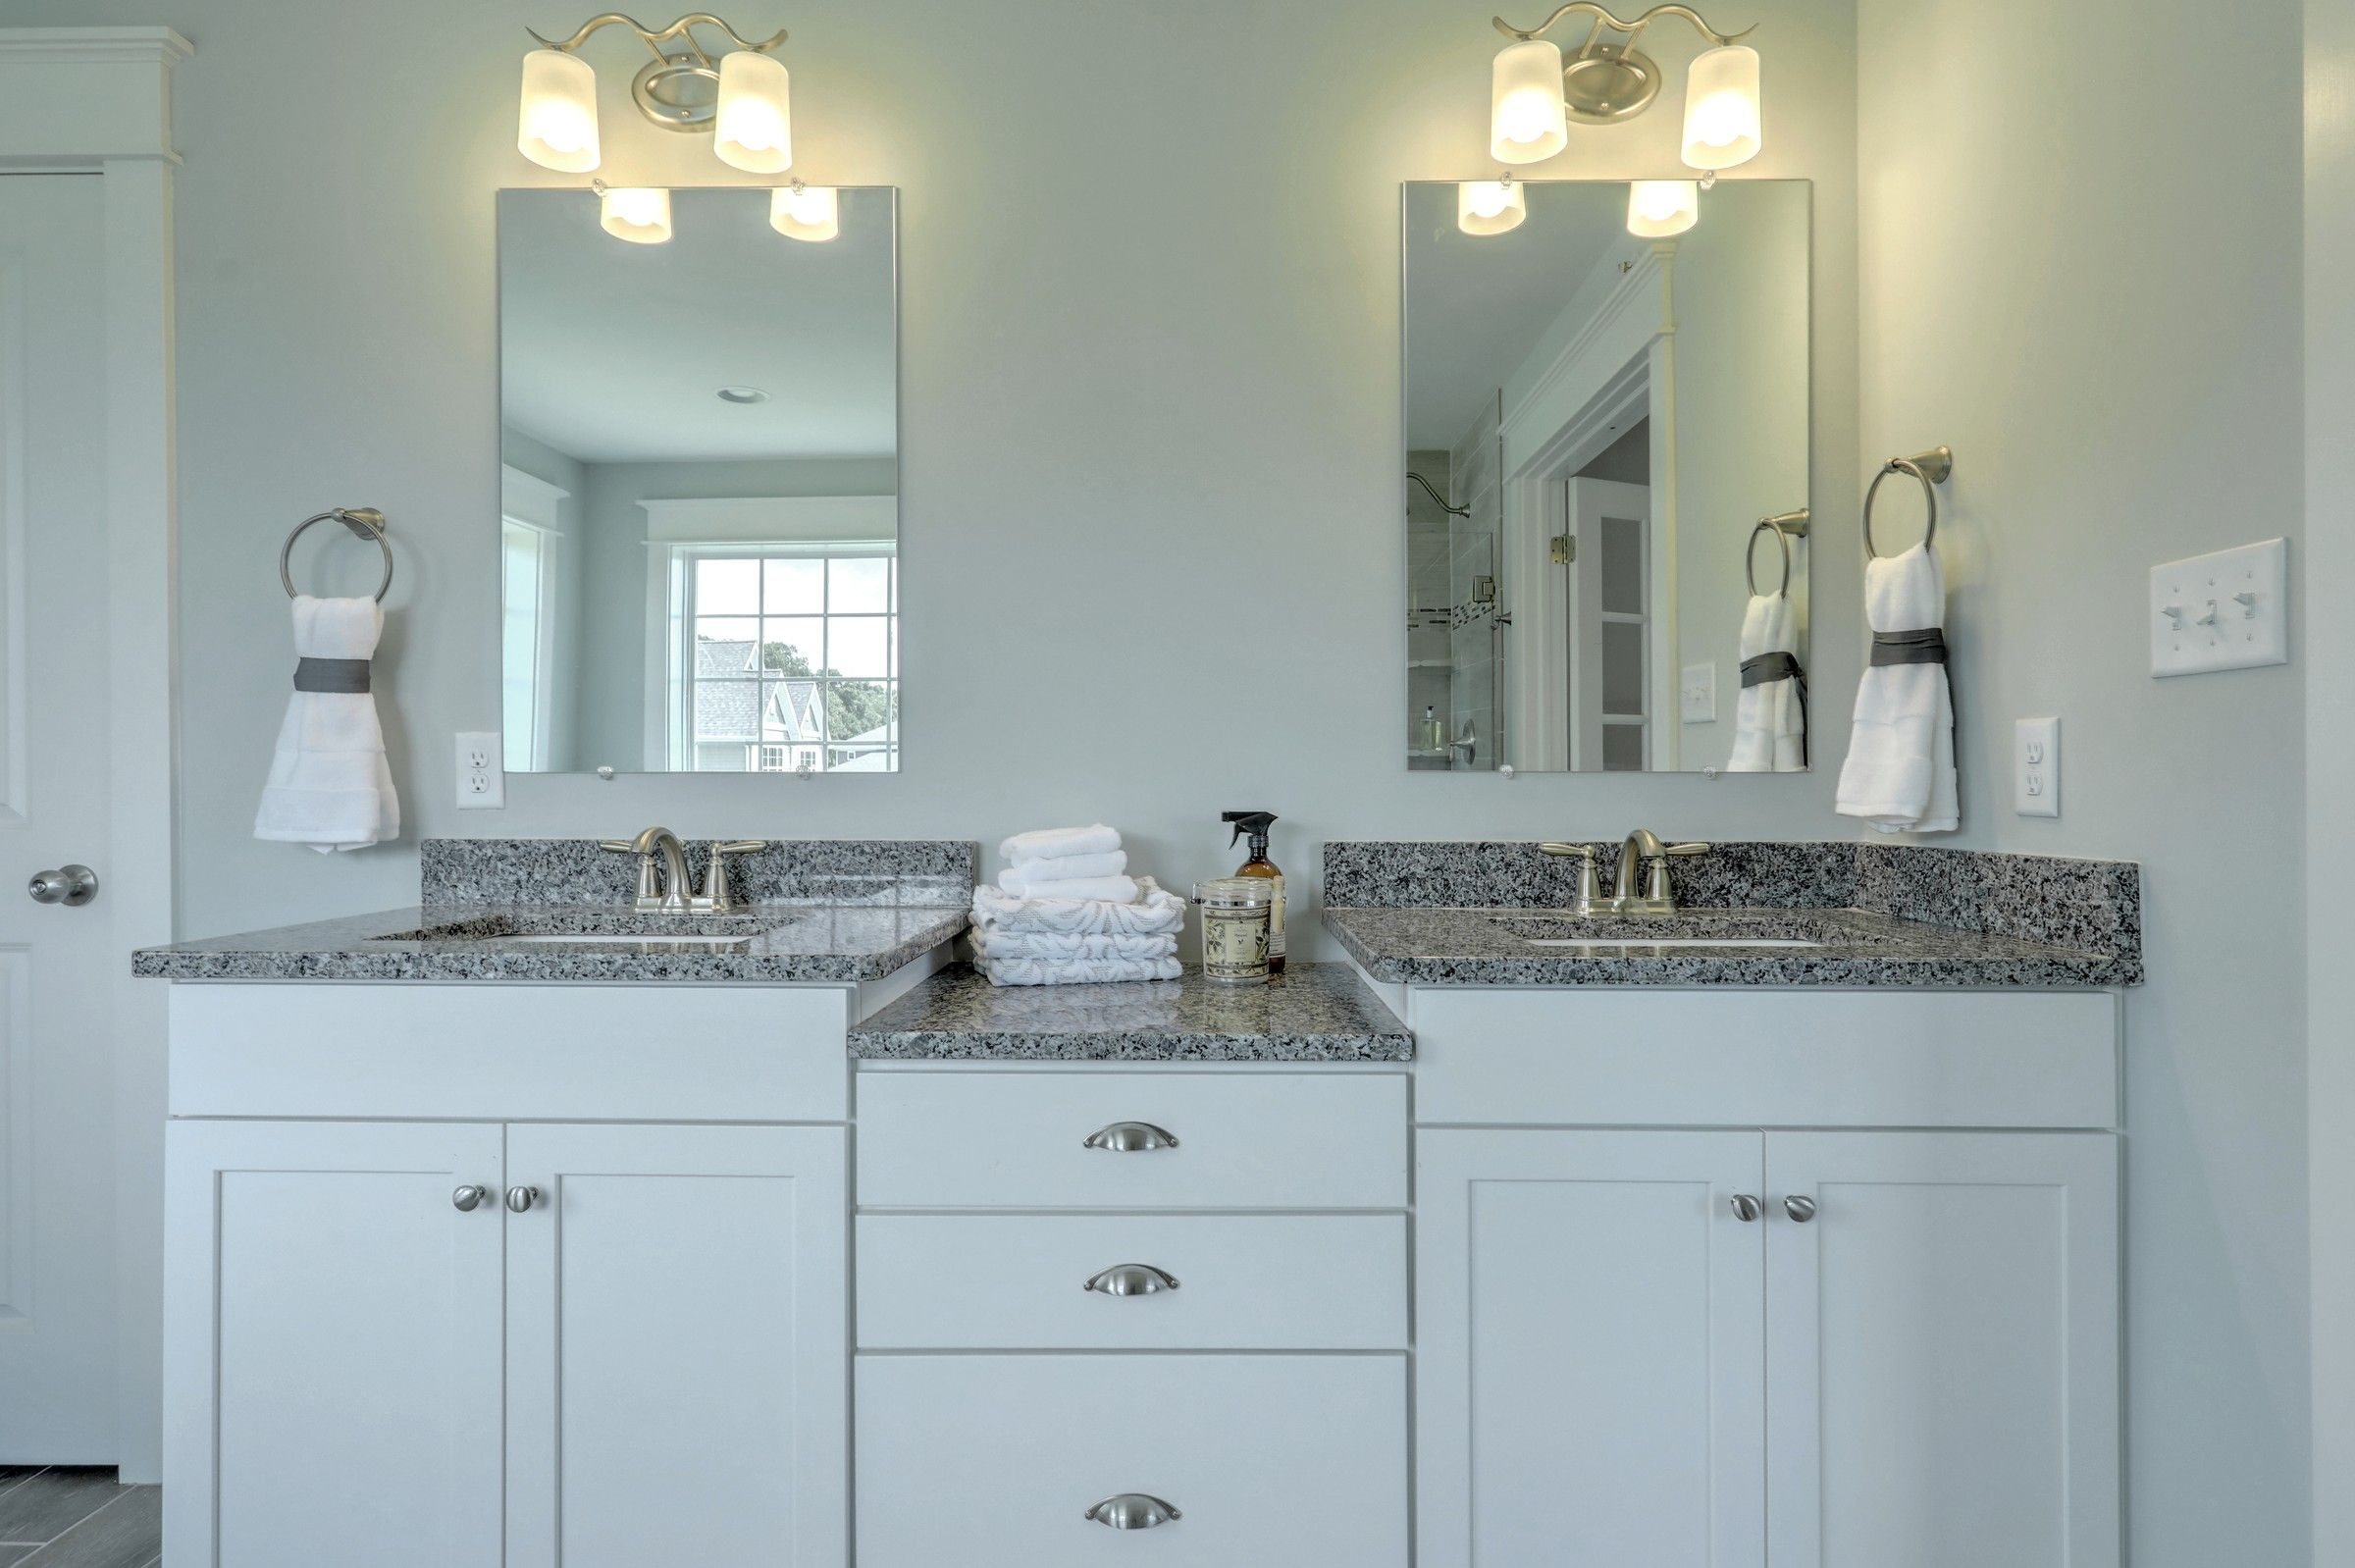 Bathroom featured in the Ethan Manor By Keystone Custom Homes in Baltimore, MD